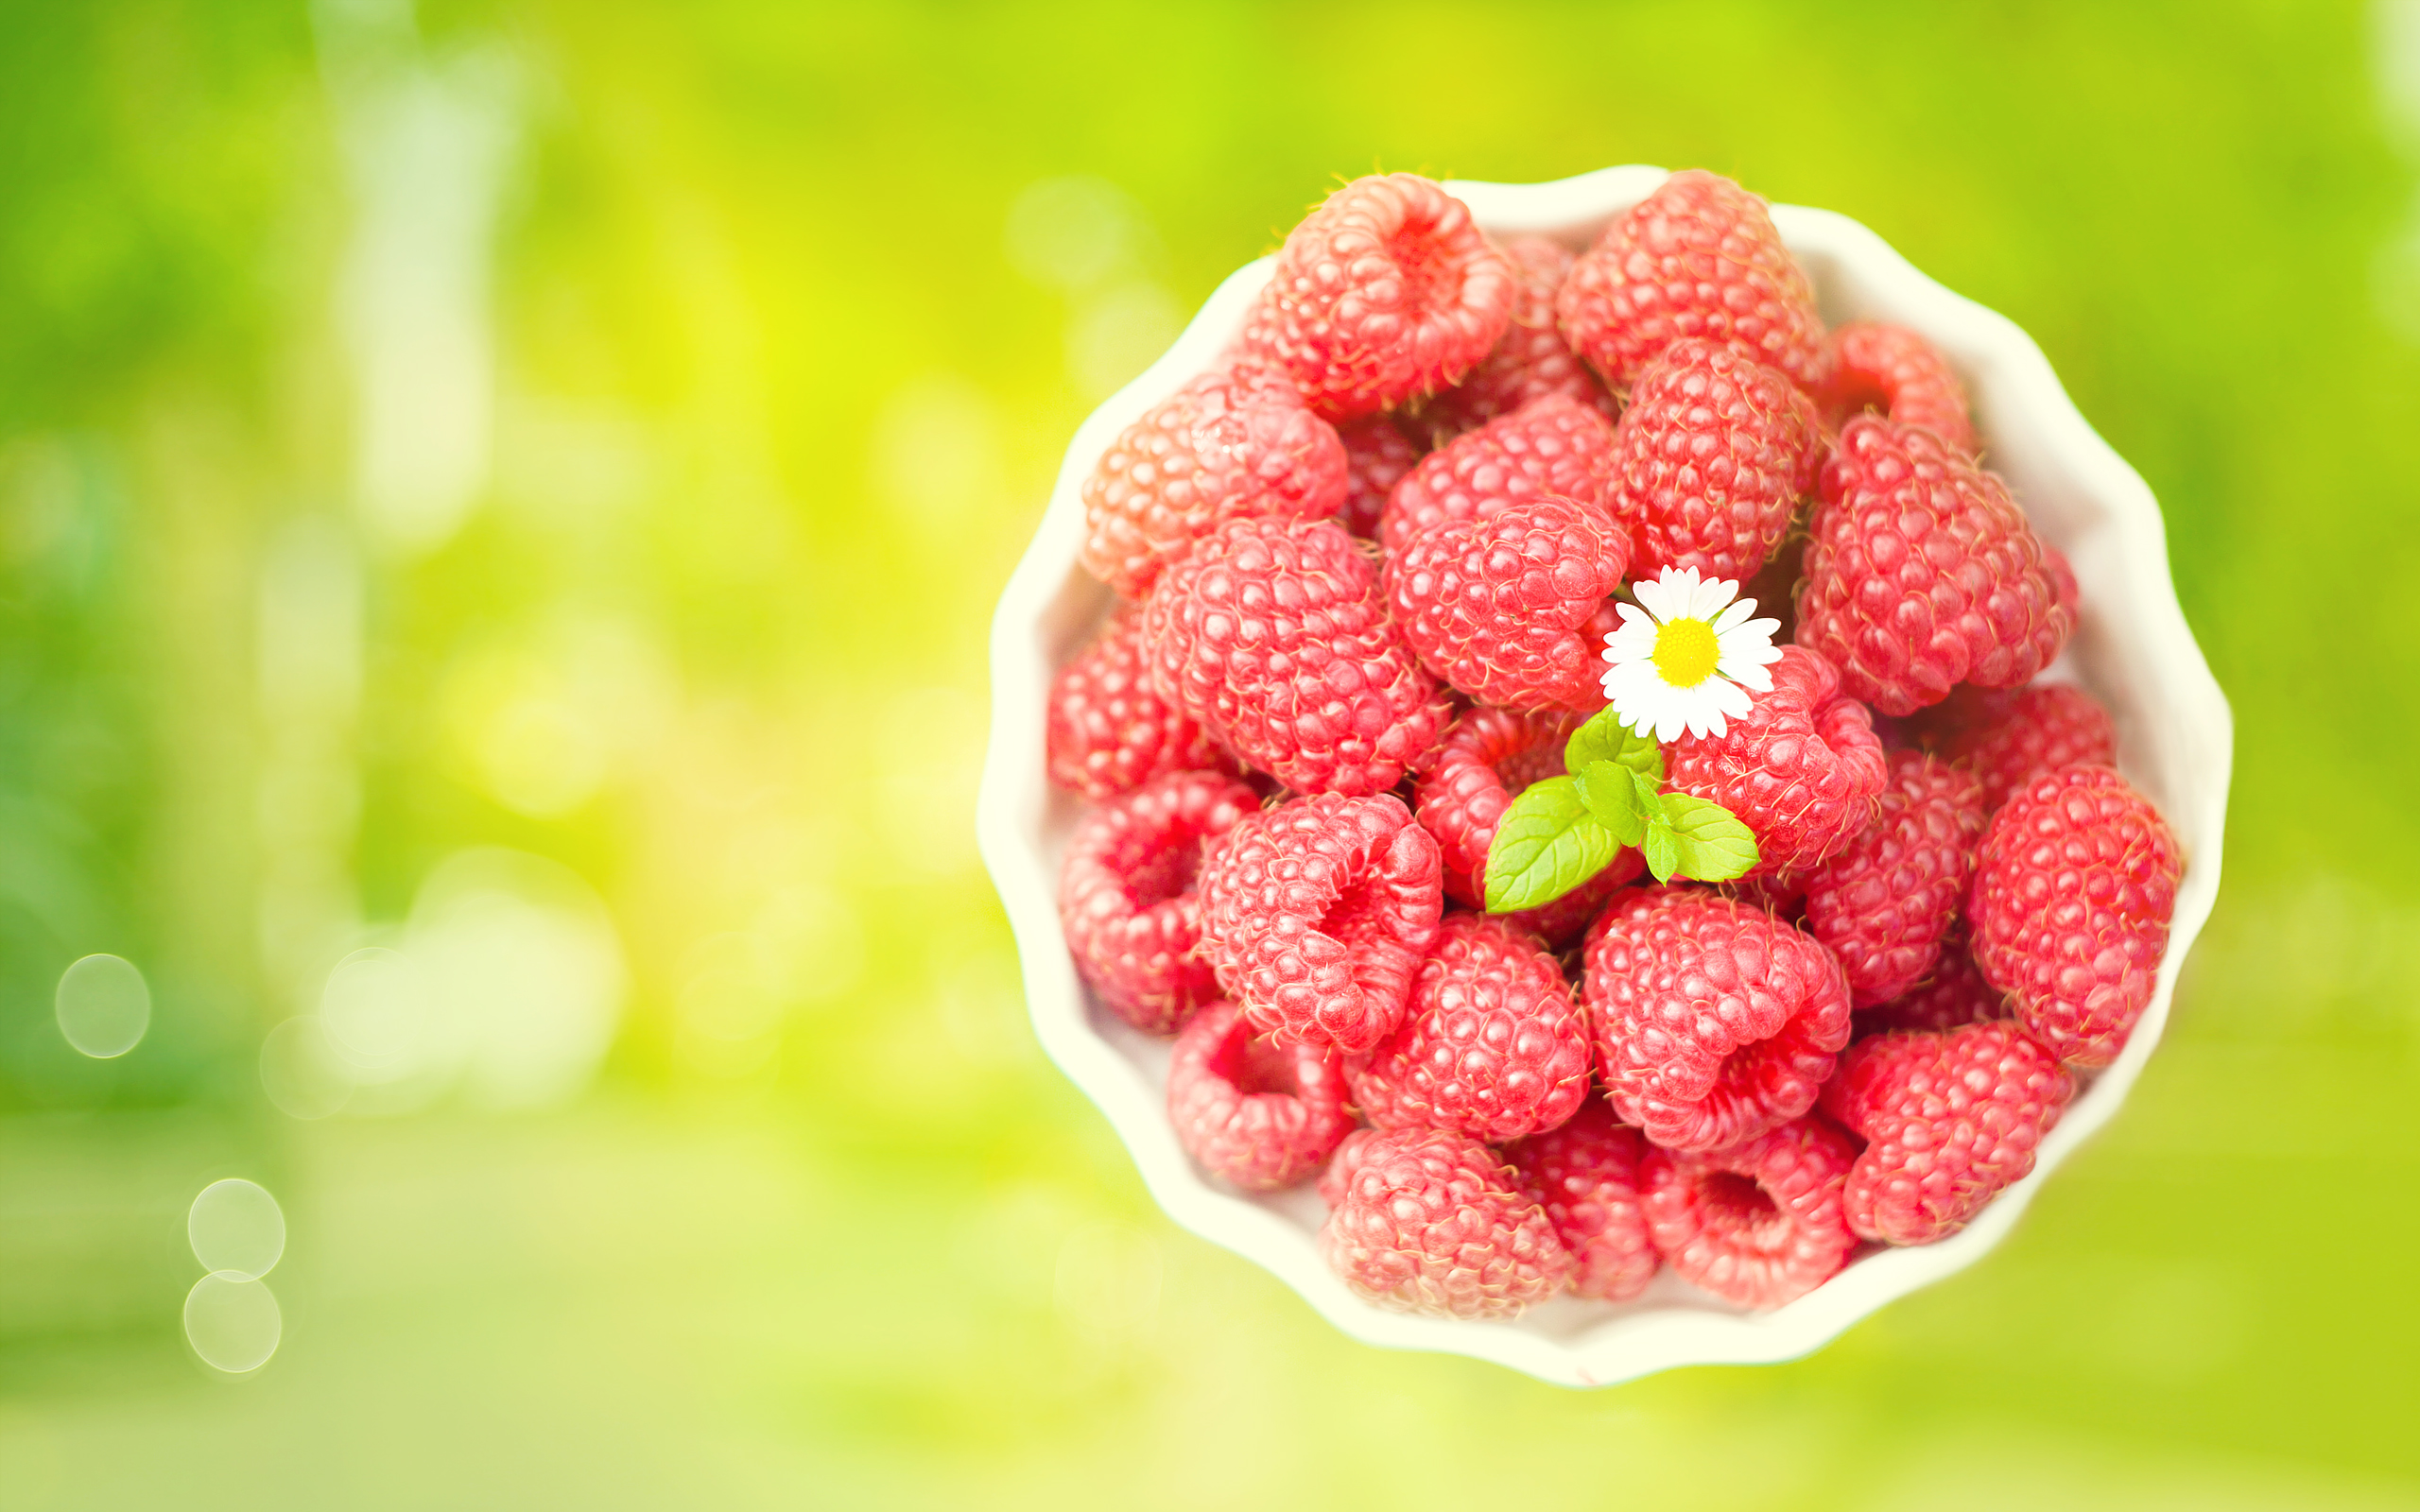 Cute Raspberries Wallpaper 29086 1960x1200 px